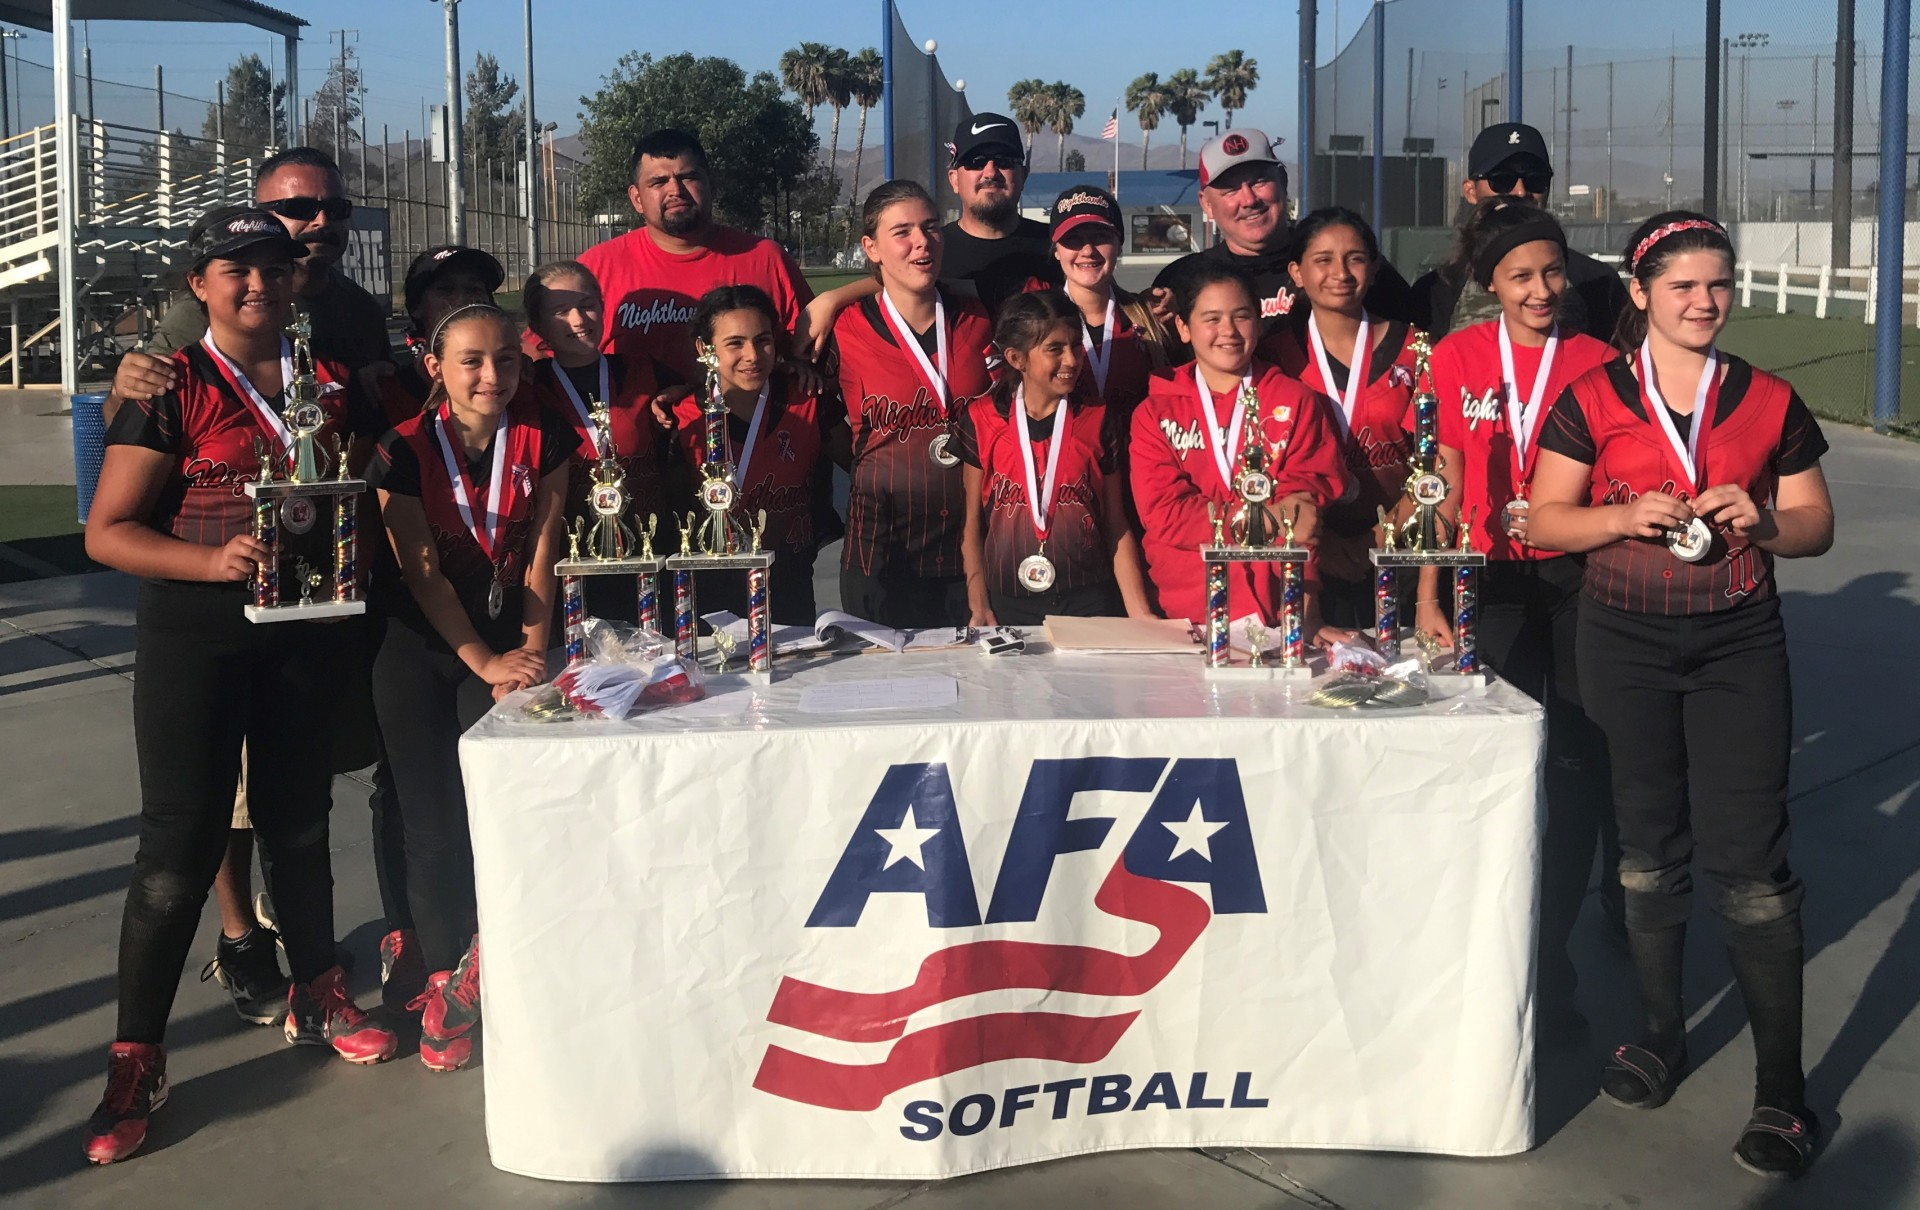 12u - Runner Up - So Cal Nighthawks - Castro